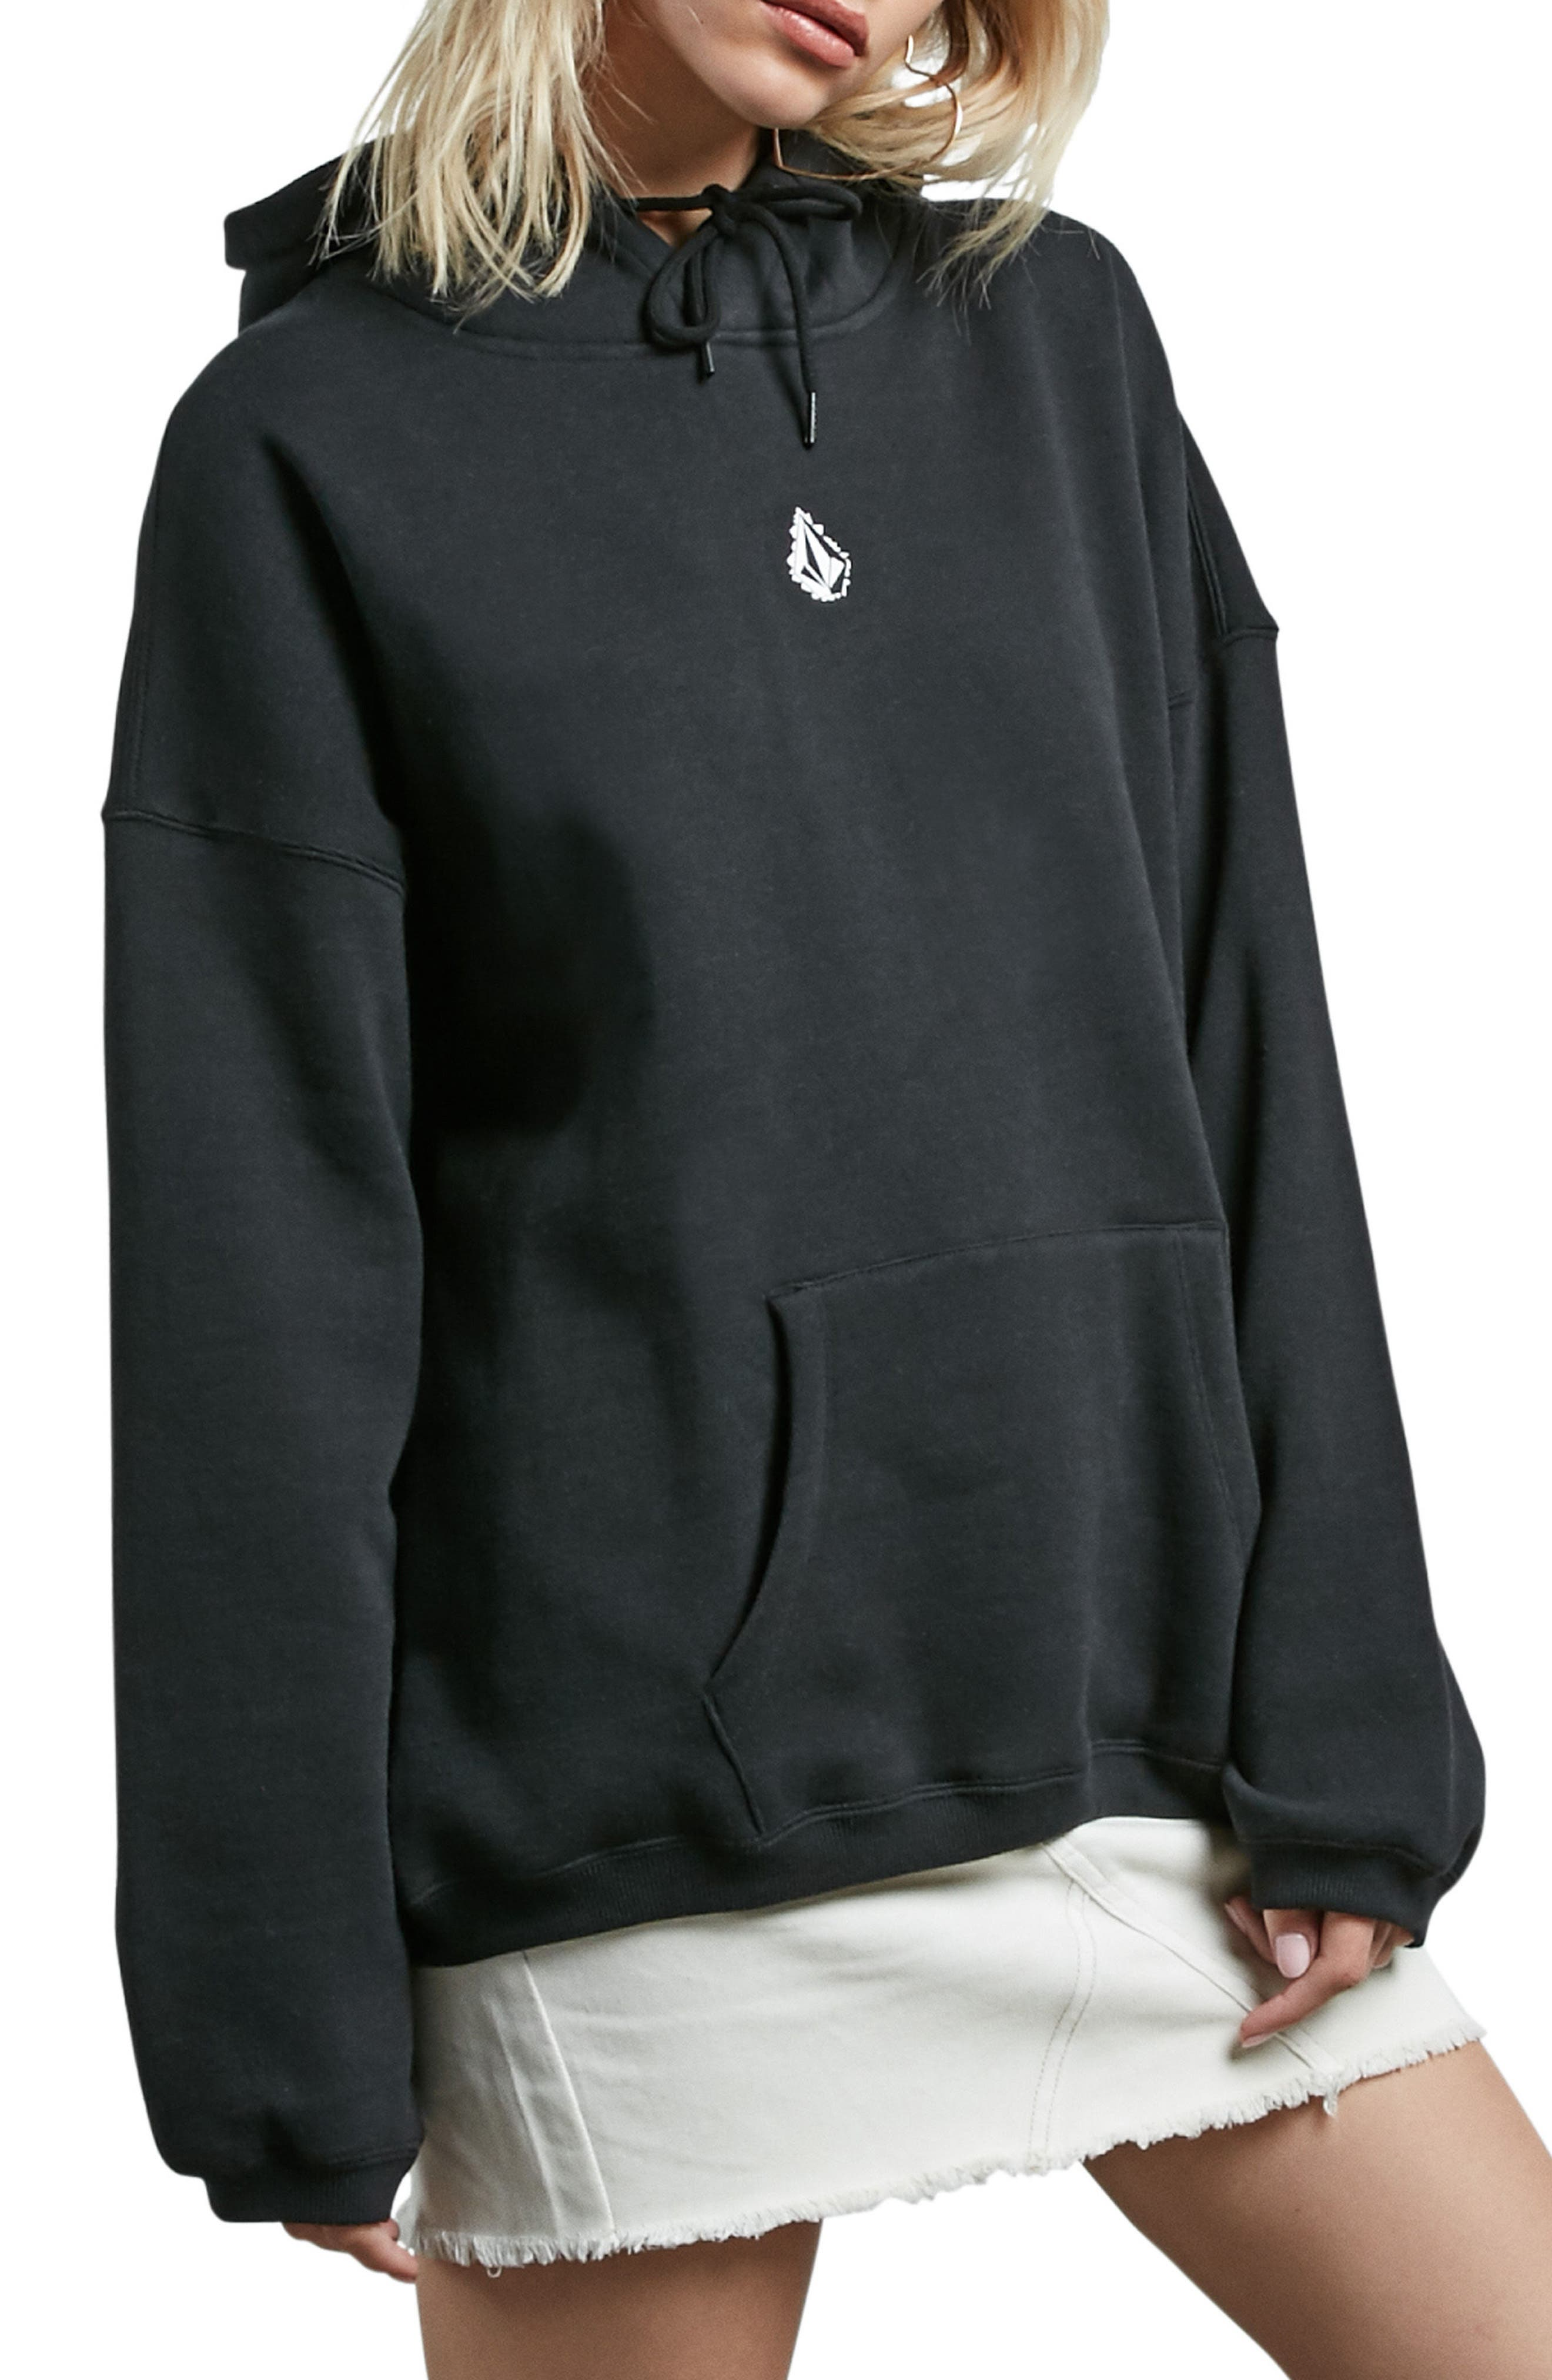 Roll It Up Hoodie,                             Main thumbnail 1, color,